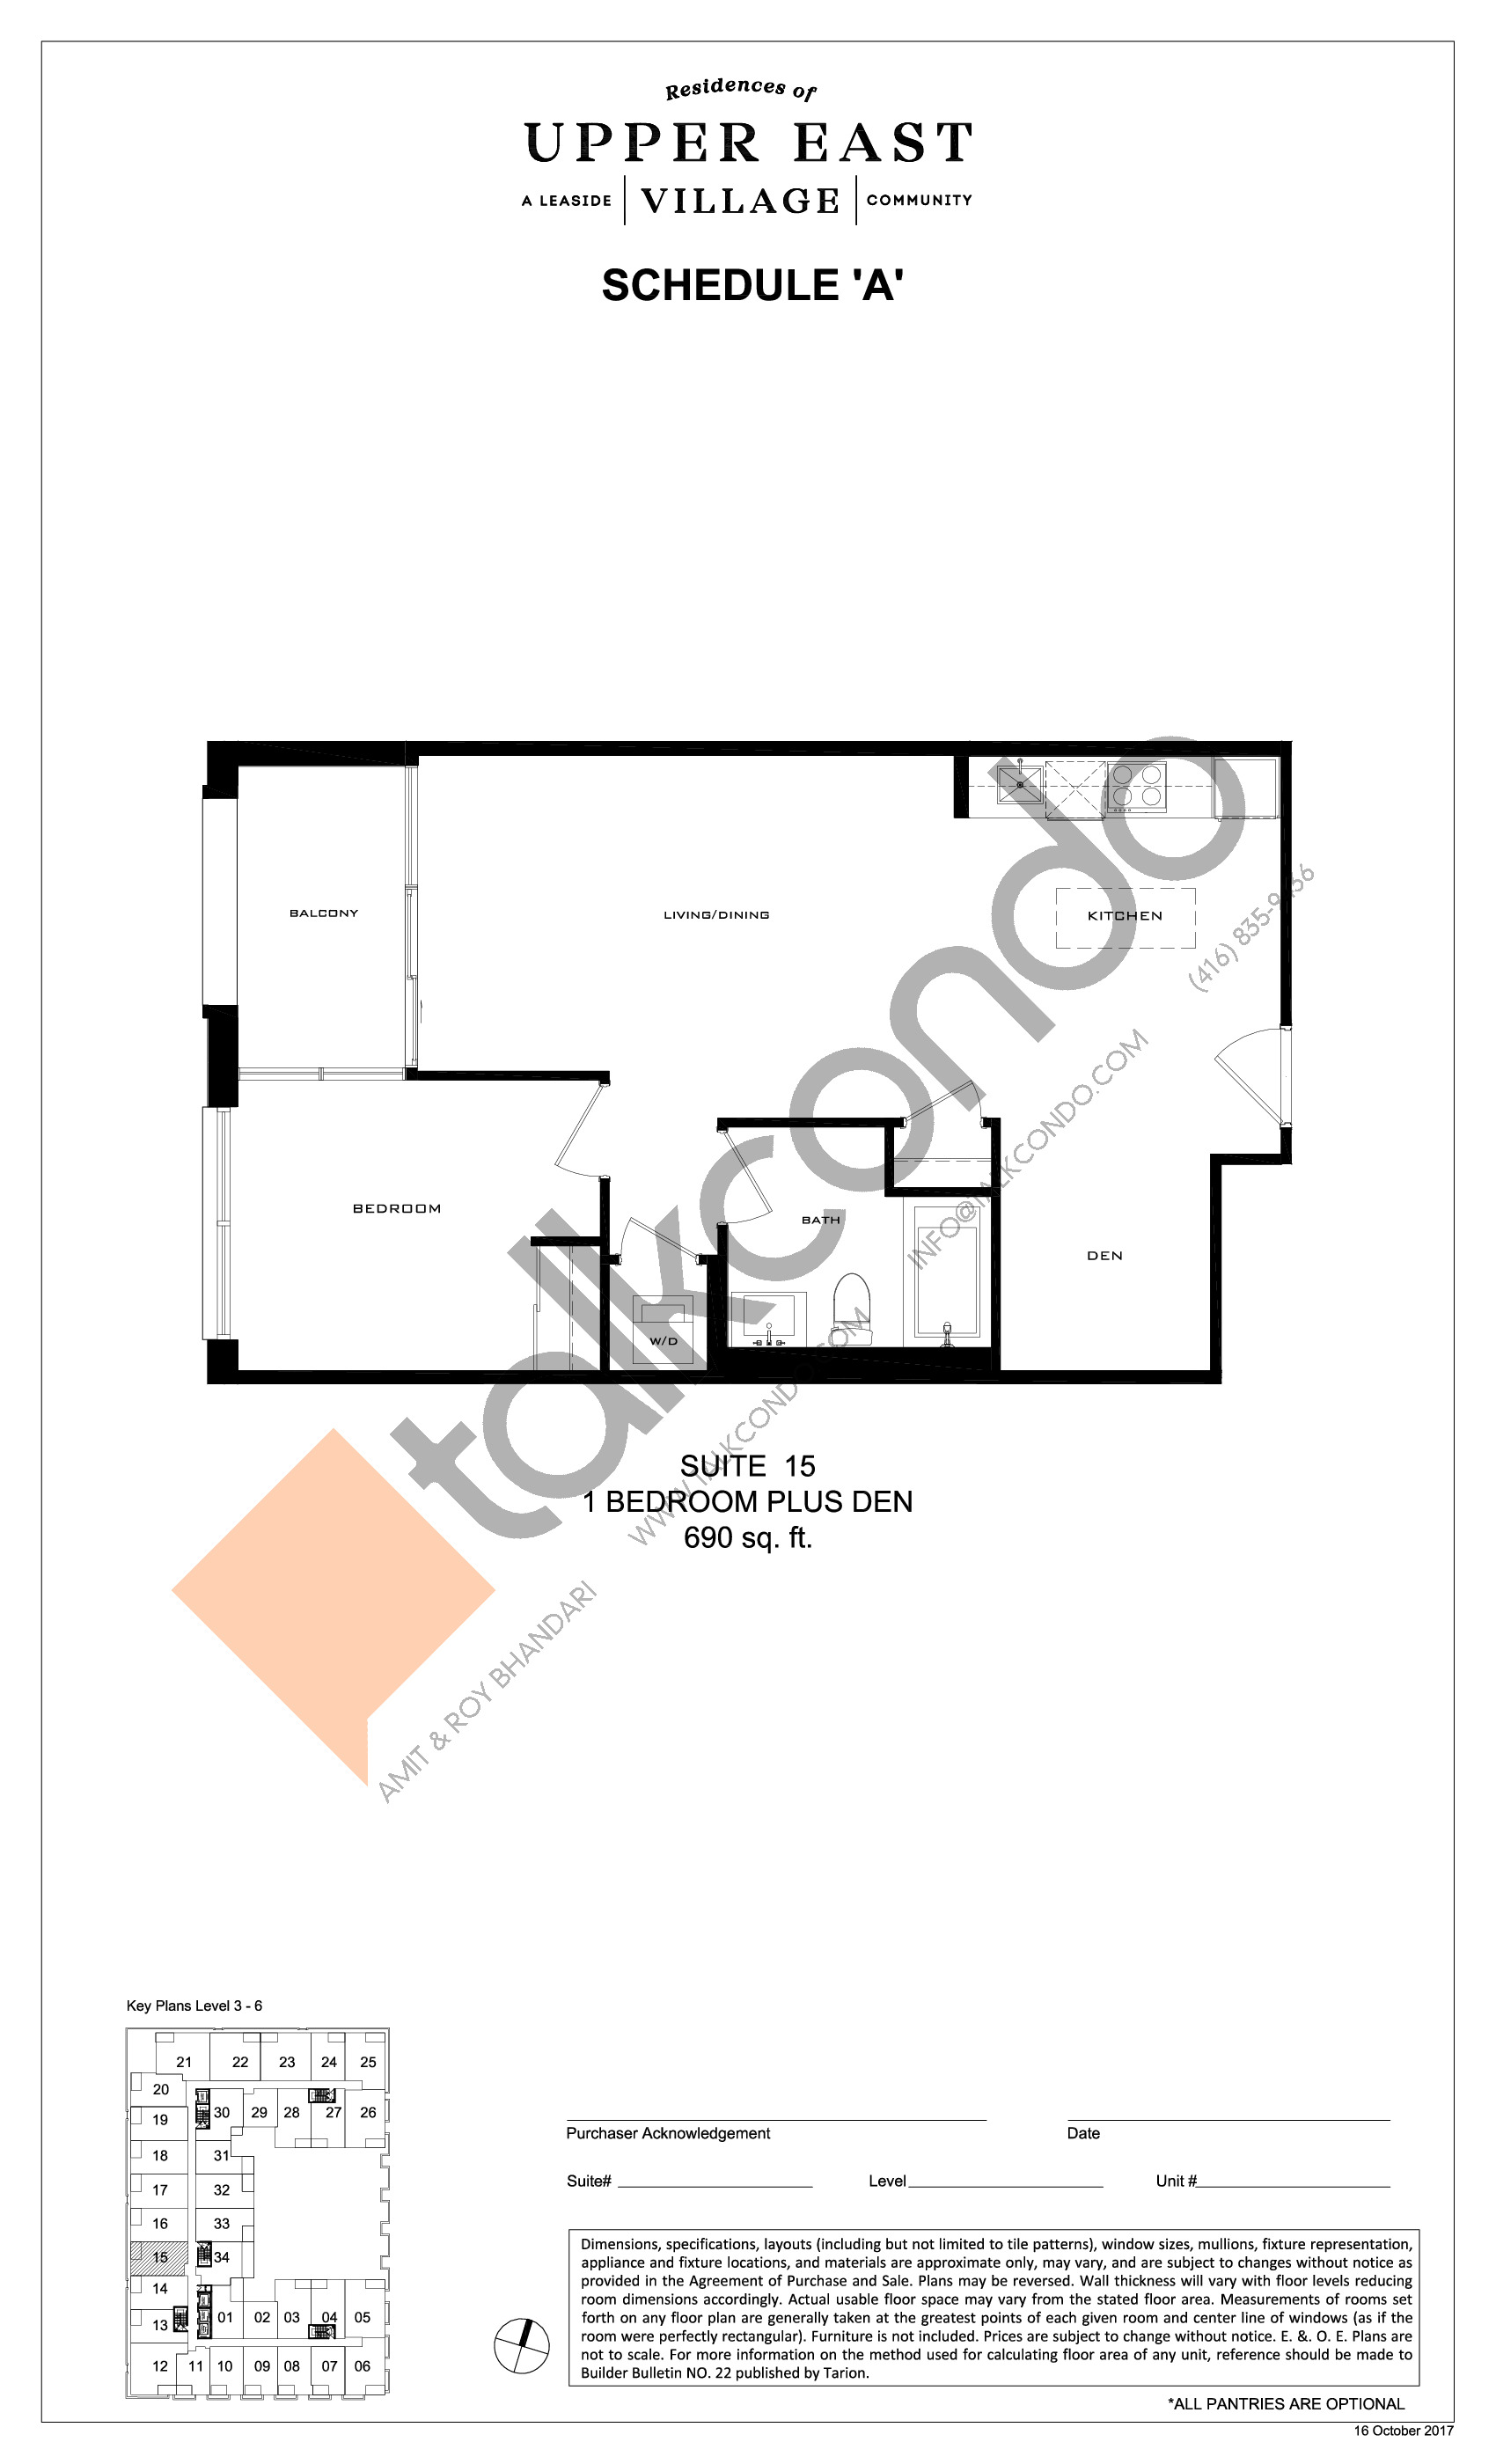 Suite 15 Floor Plan at Upper East Village Condos - 690 sq.ft